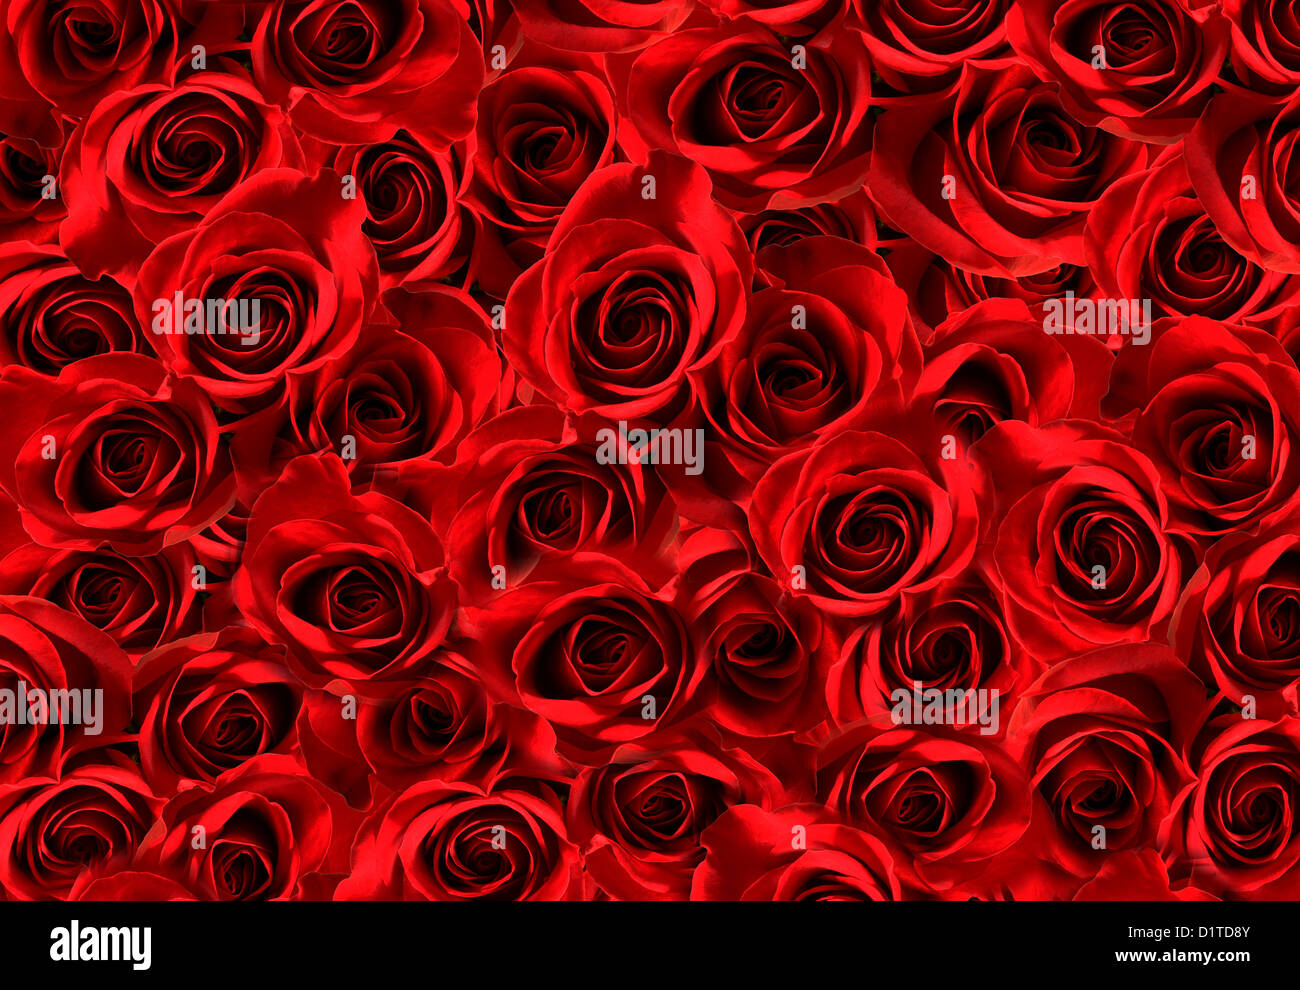 A lots of red roses texture background symbol of love stock photo a lots of red roses texture background symbol of love buycottarizona